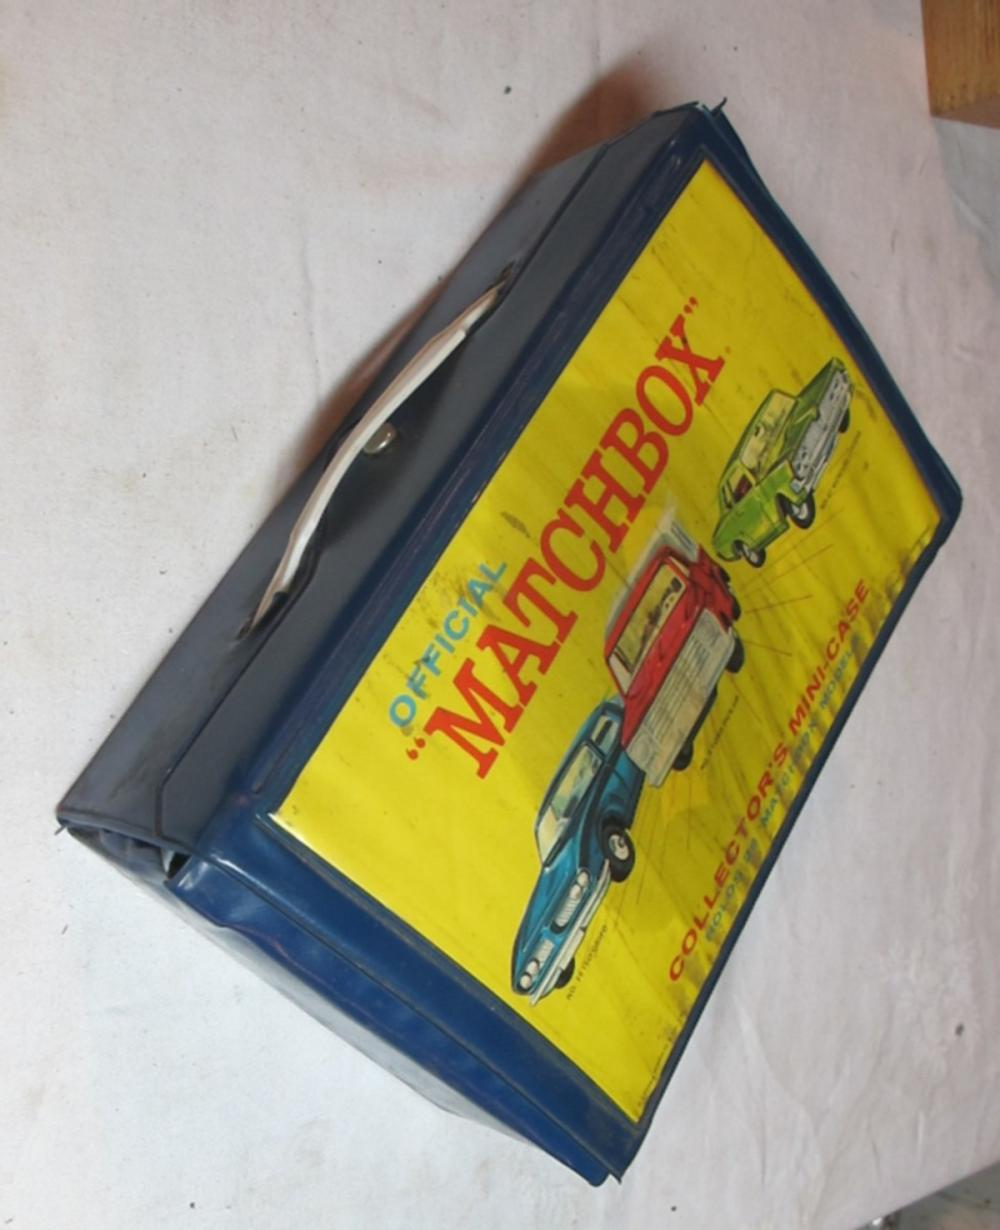 VINTAGE MATCHBOX VINYL COLLECTOR CAR CASE W/25 OLD MATCHBOX CARS TRUCK TRAILER BP GAS